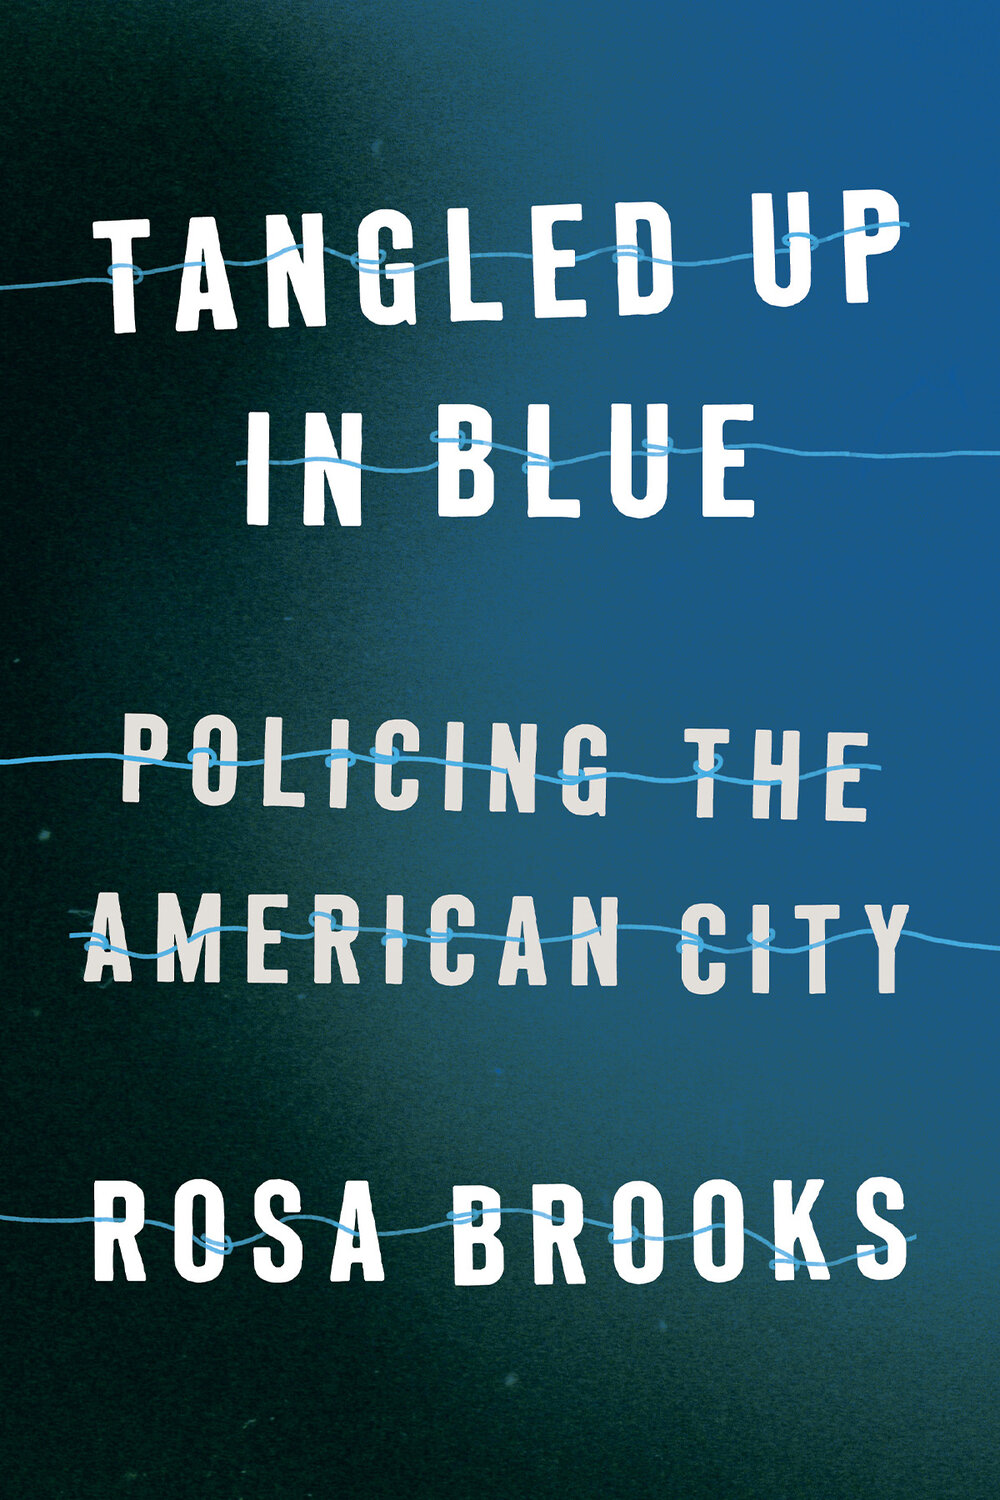 Tangled Up in Blue: Policing the American City by Rosa Brooks